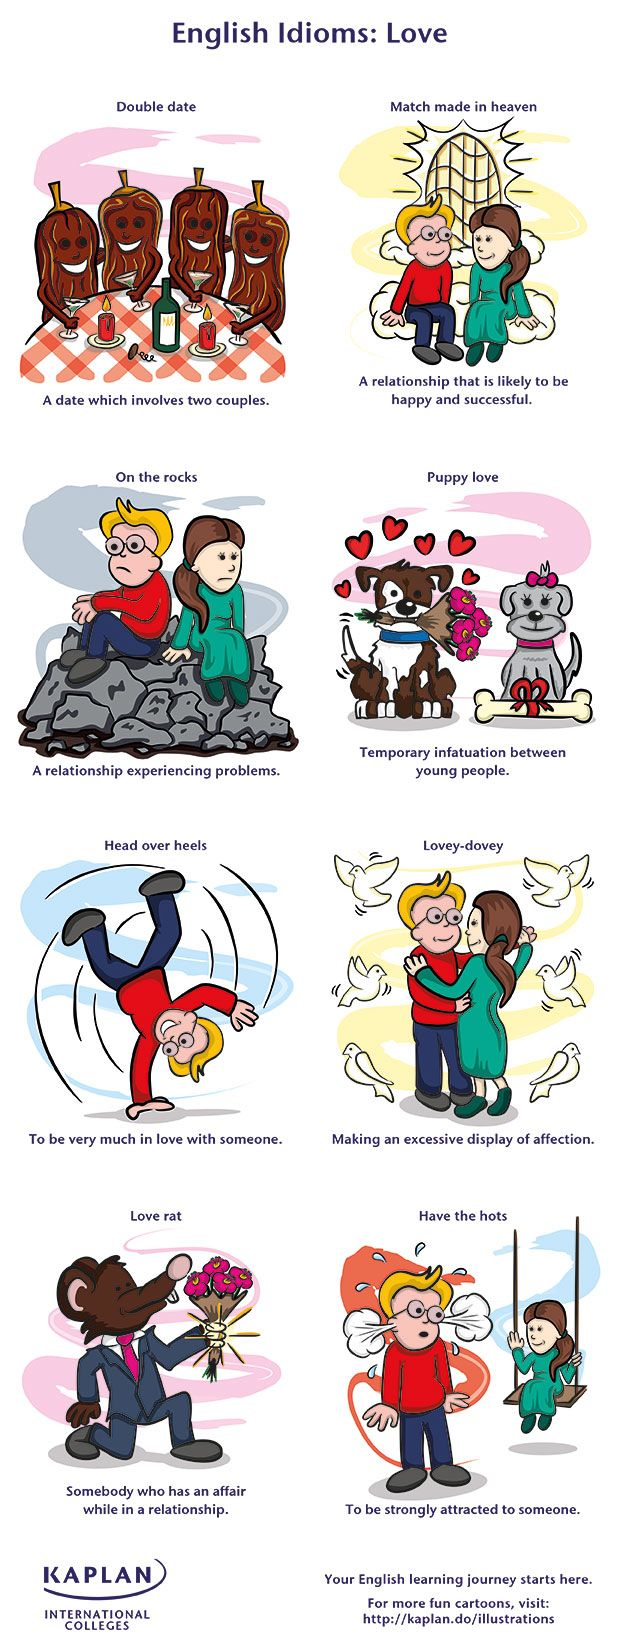 English Idioms: Love - Kaplan International Colleges Blog